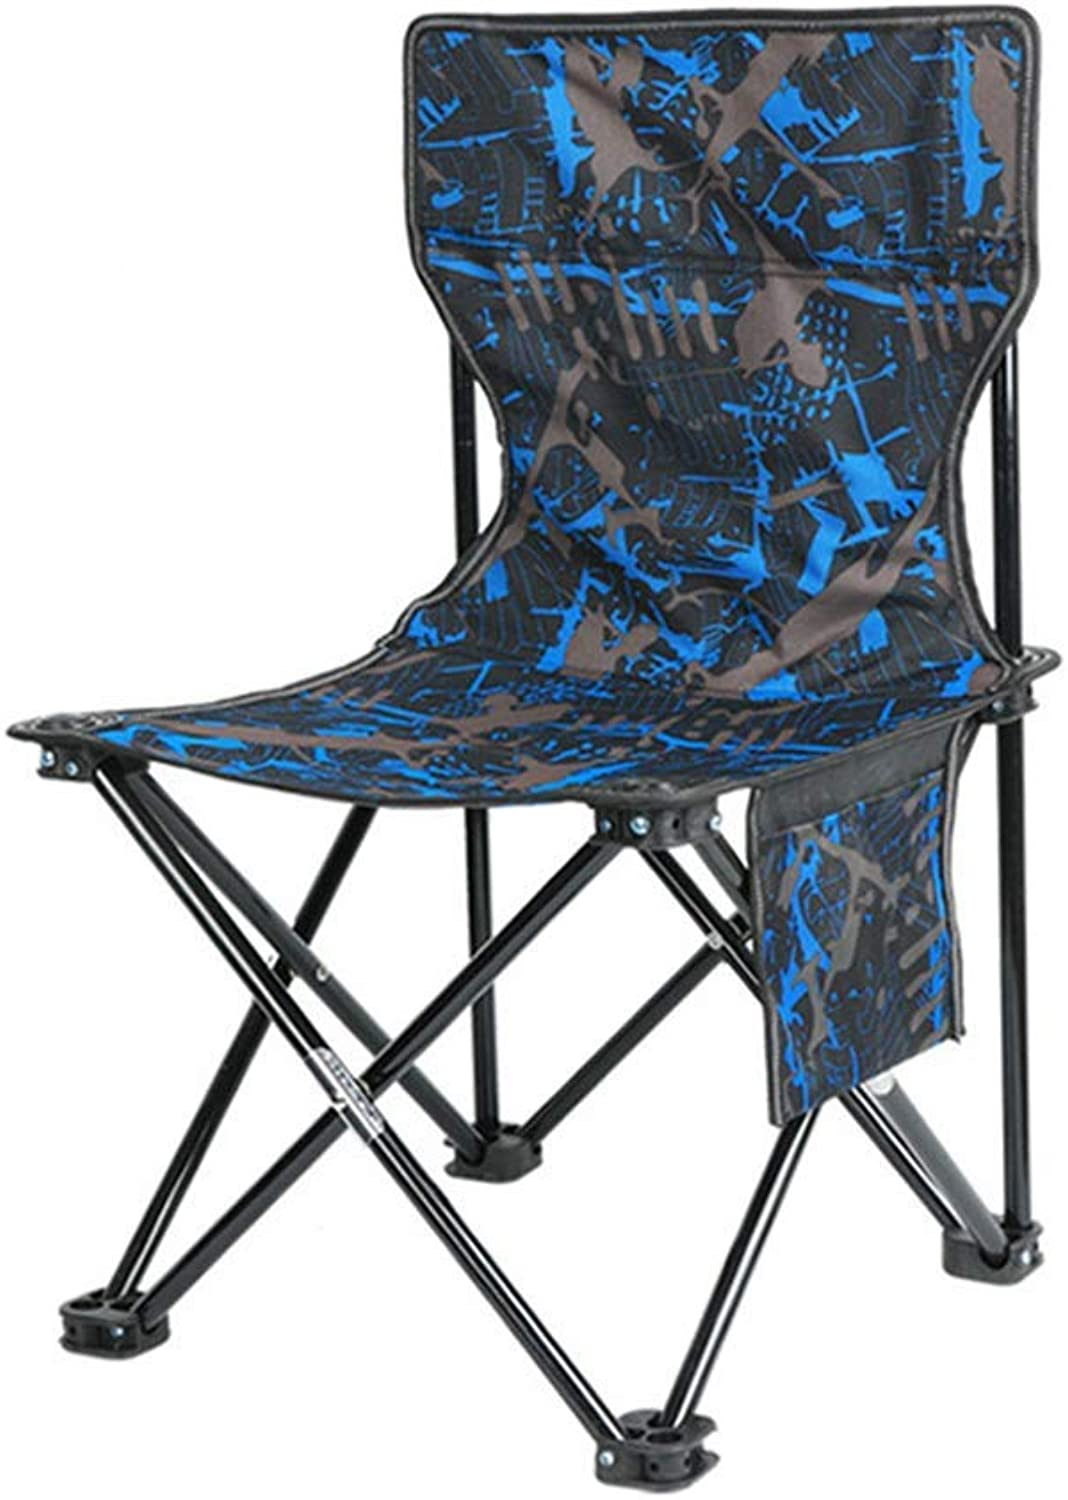 Portable Folding Chair, Camp Travel Chair, Light Weight Folding Camping Chair Garden Seat for Fishing BBQ Picnic Beach.